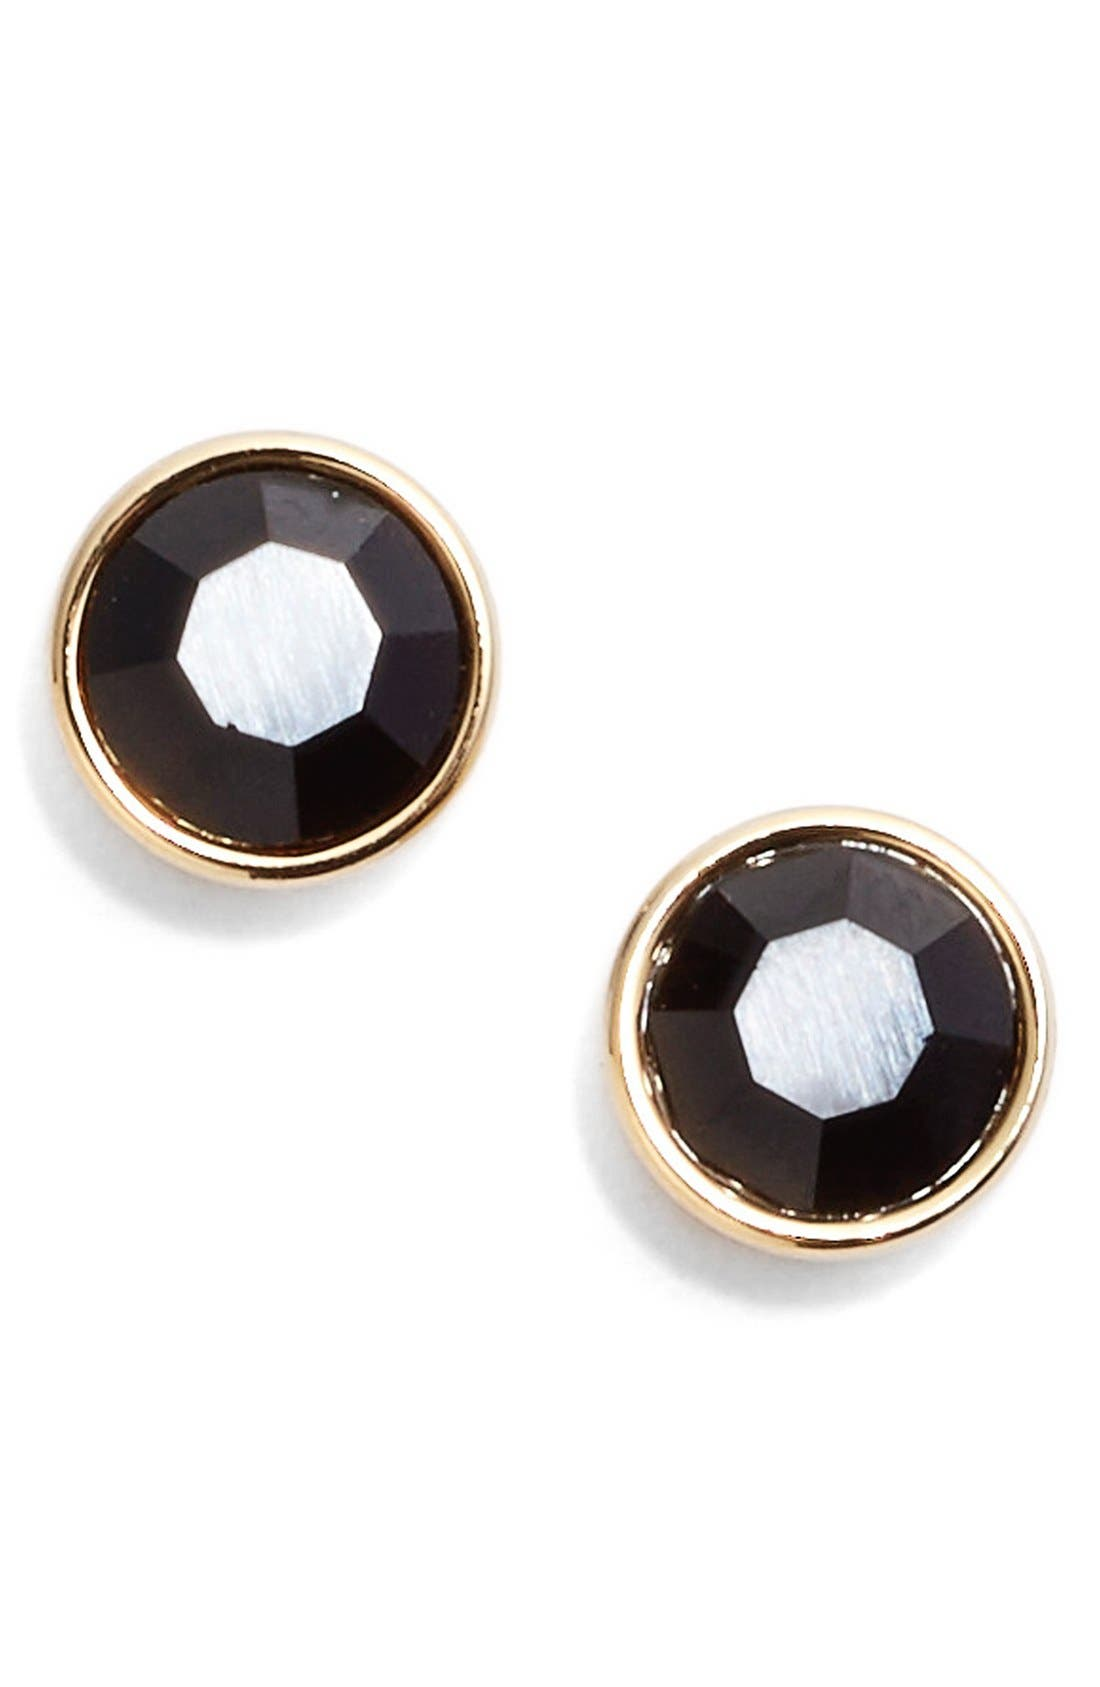 Main Image - kate spade new york 'forever' stud earrings